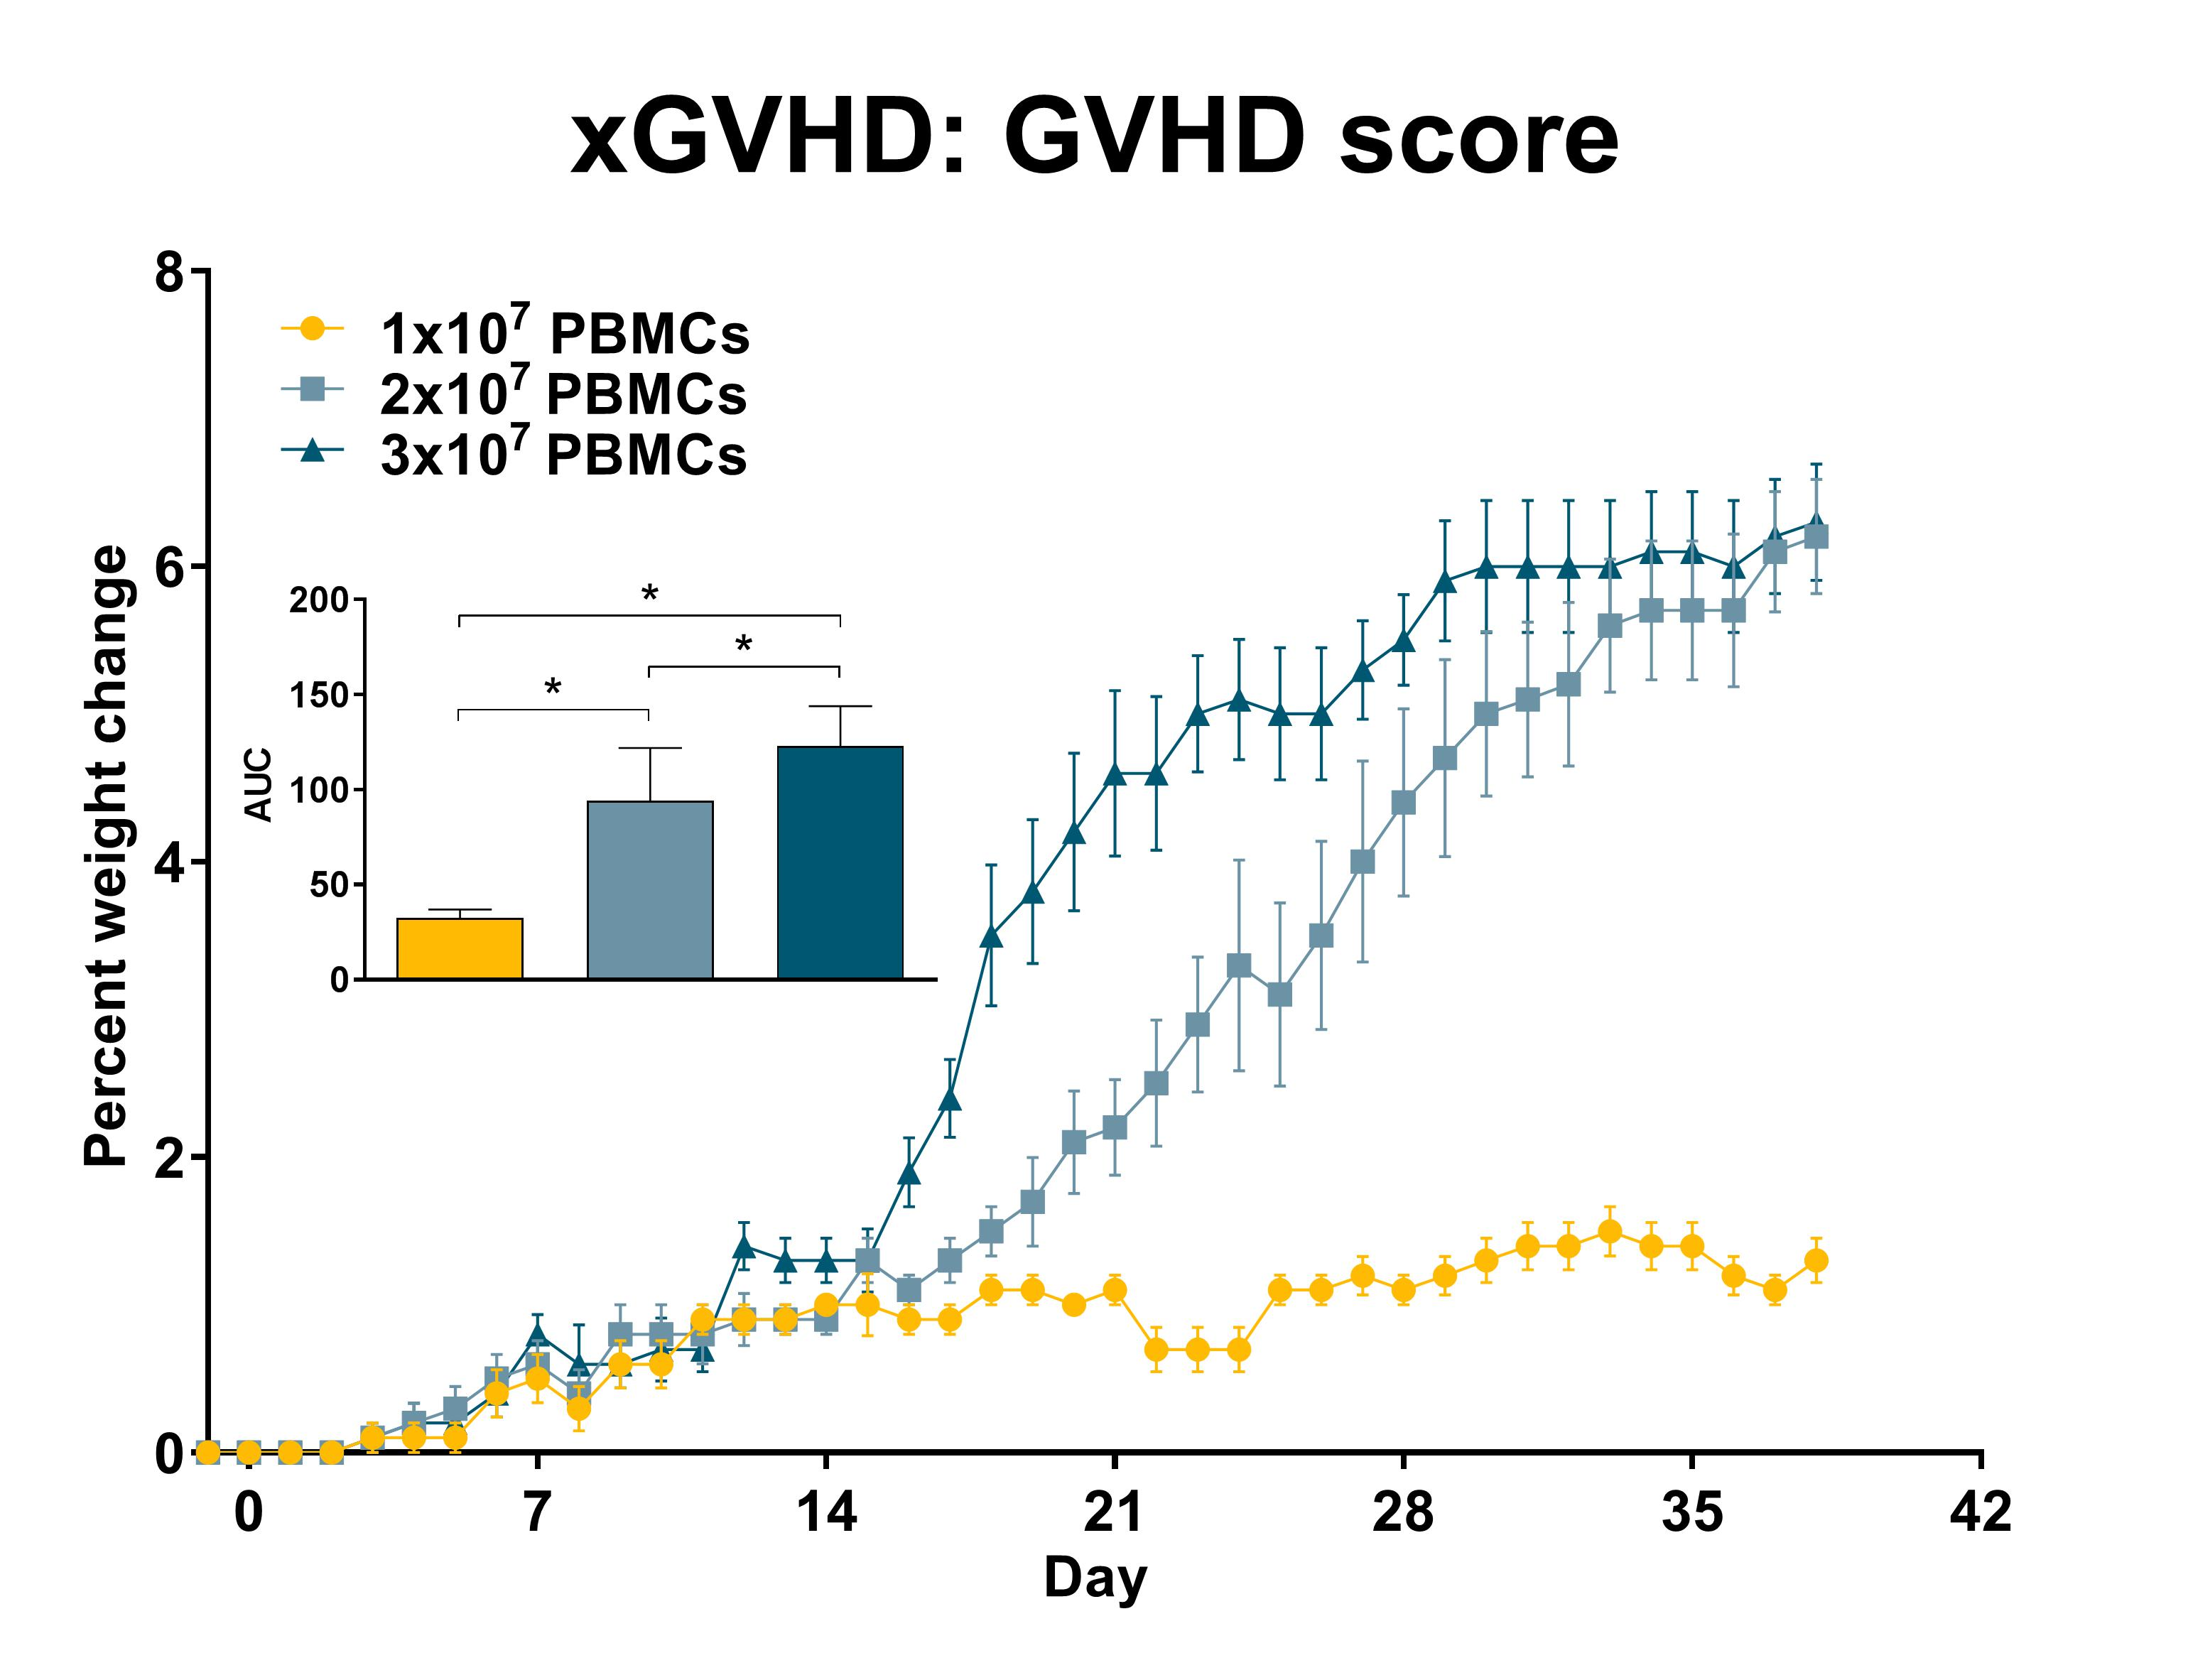 Recipient mice were injected with a pre-determined number of purified single-donor human PBMCs (see legend) on day 0. GVHD score was recorded daily. Statistical evaluation by one-way ANOVA with Holm-Šidák's multiple comparison post-test. *: p<0.01 comparing indicated groups. AUC: area under the curve; n=15 per group; data is presented as mean ±SEM.